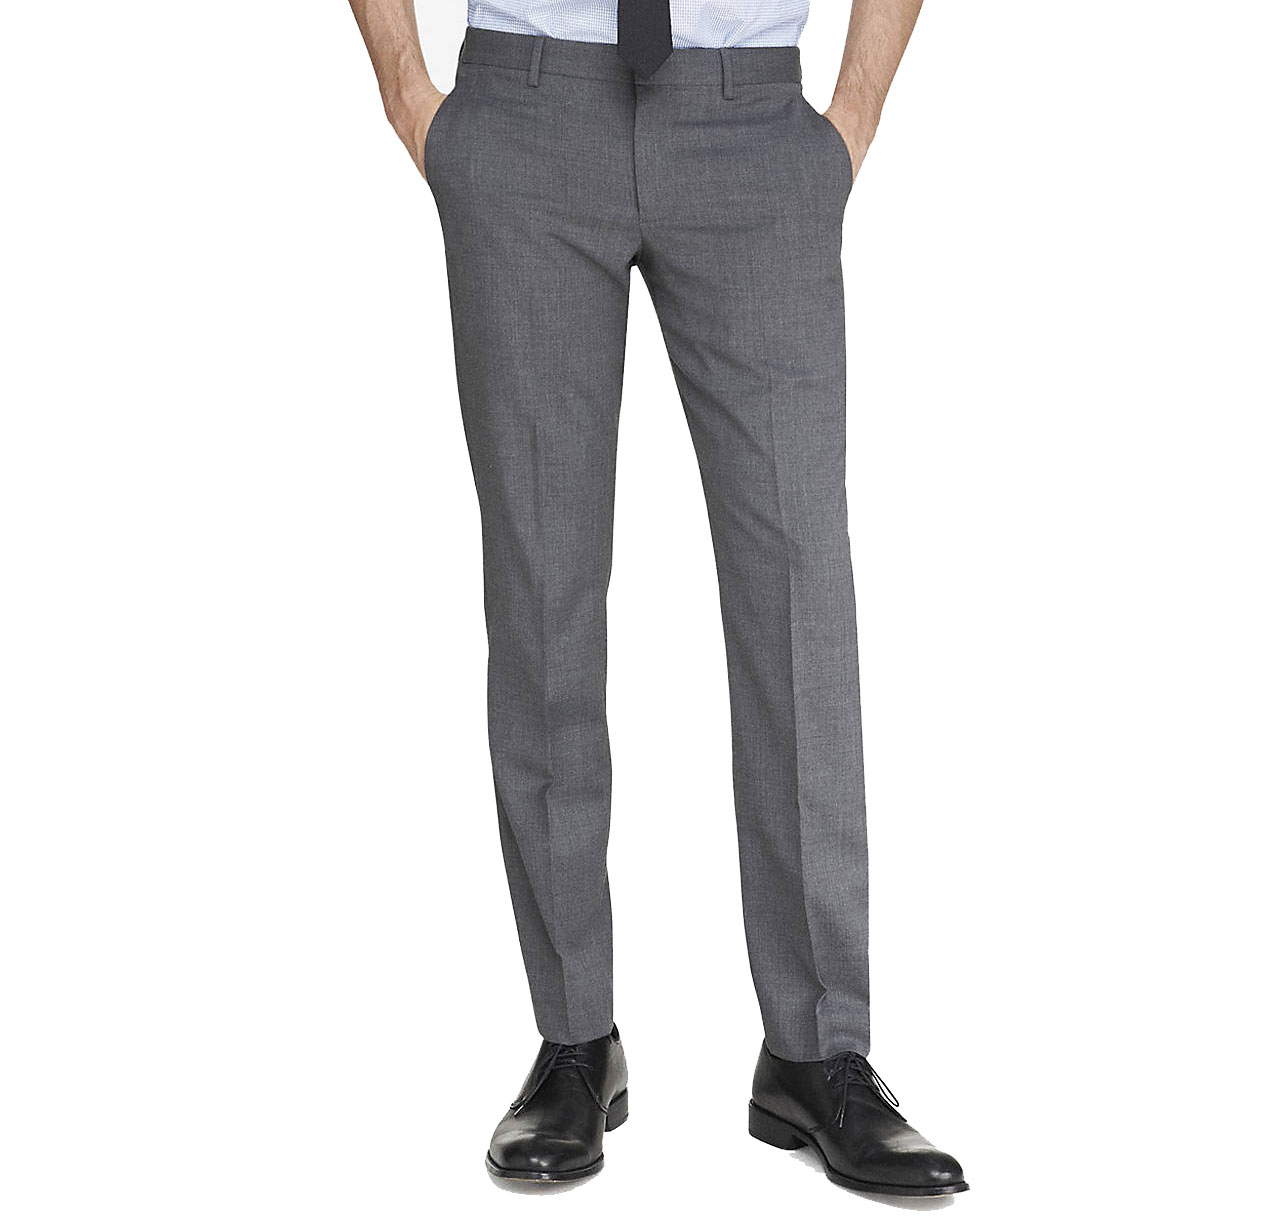 Solid Dress Men Pants / Slacks EBPS1681M